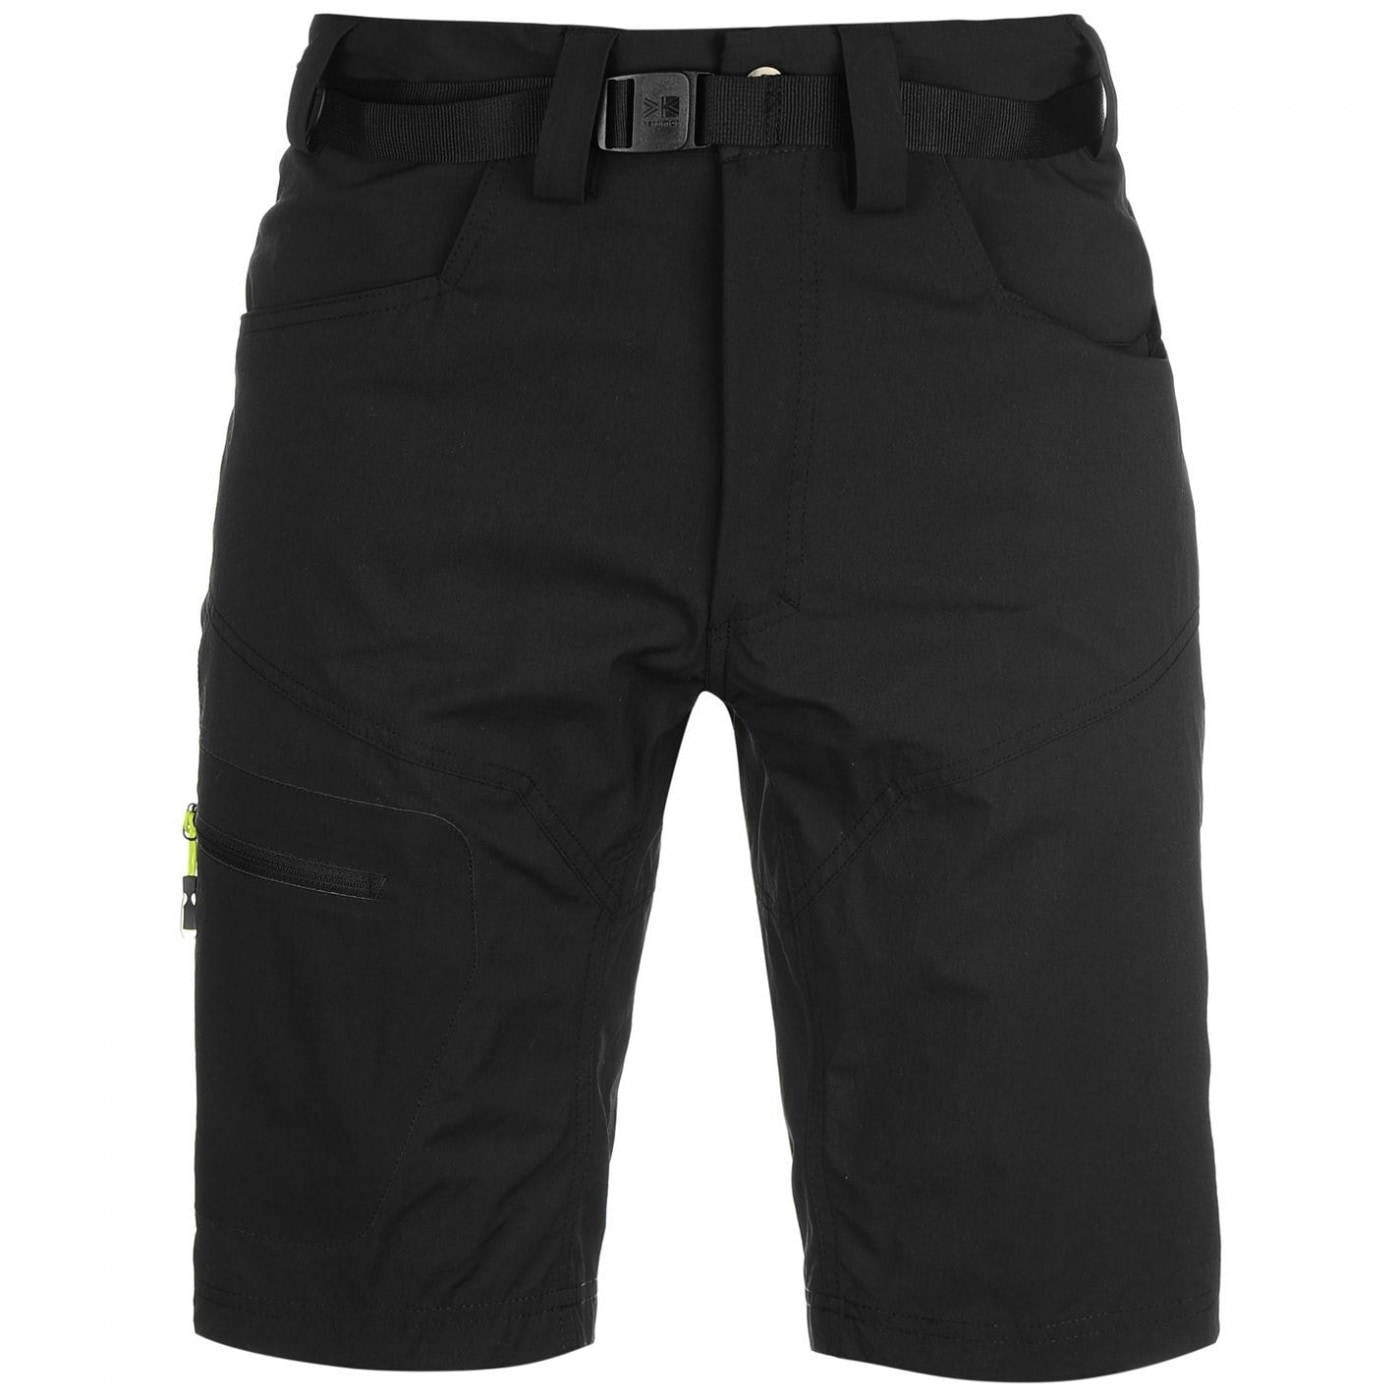 Karrimor Hot Rock Shorts Mens